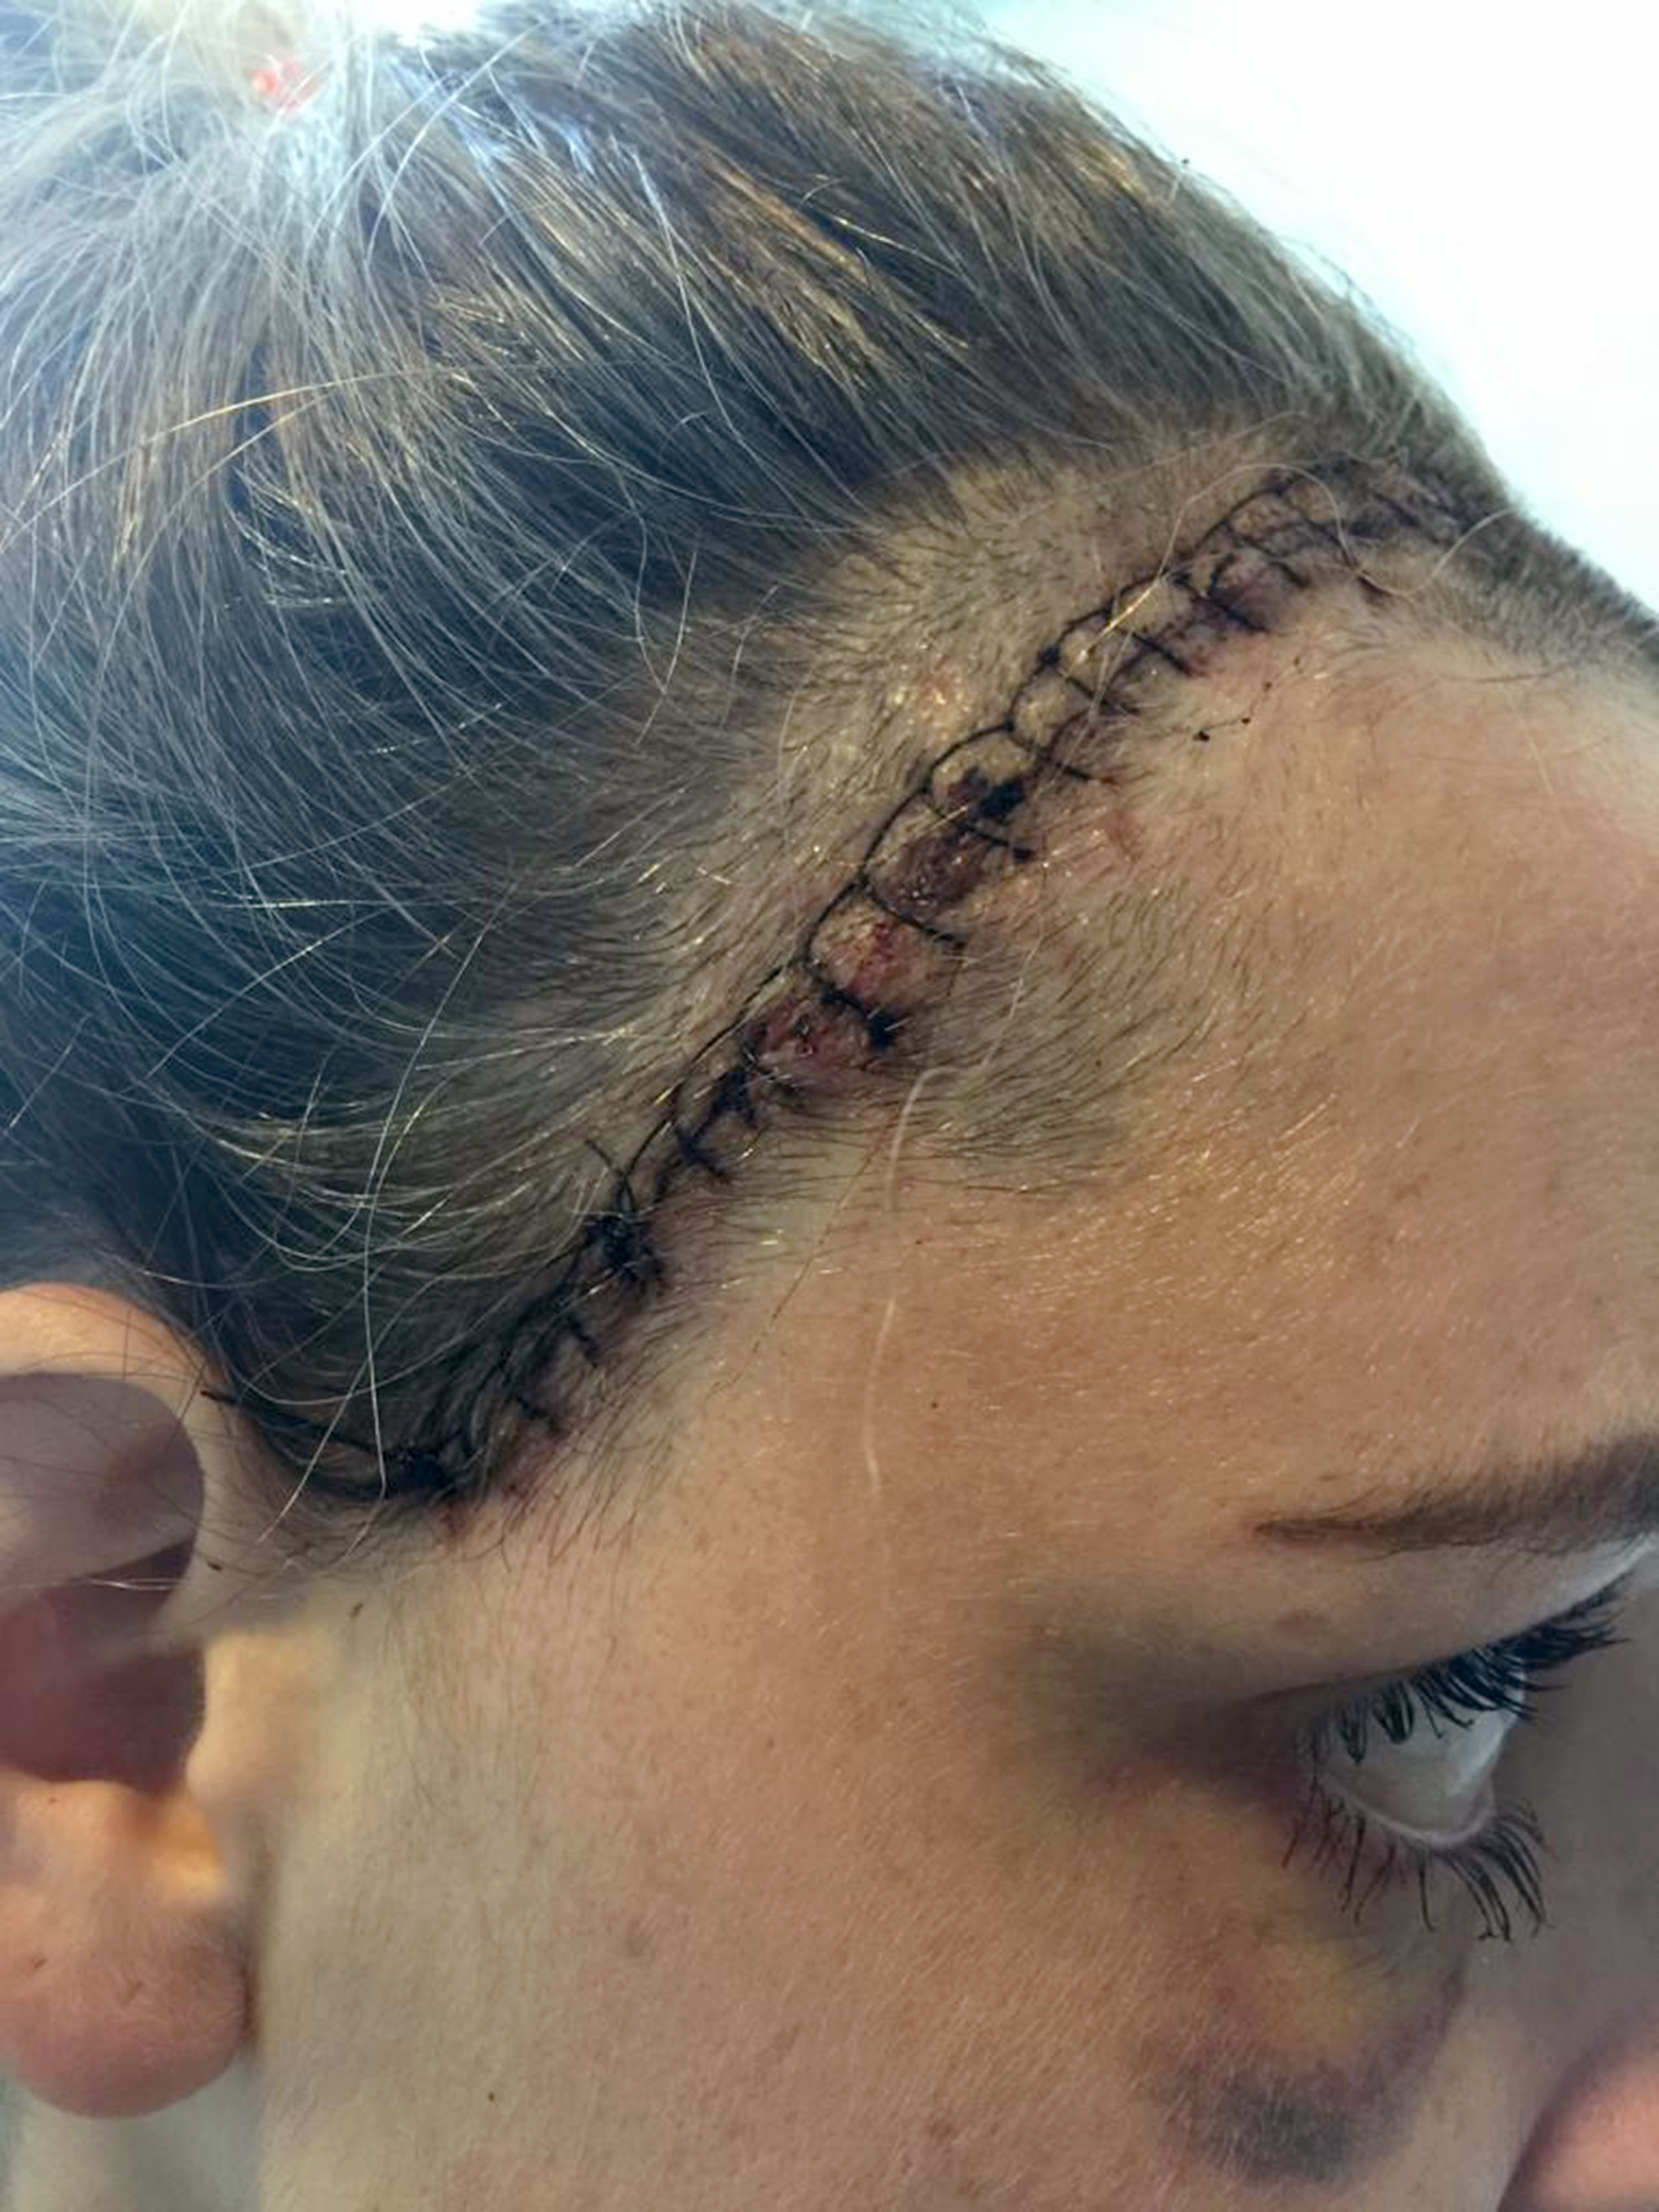 Emily had the stitches after the surgery [Photo: Caters]